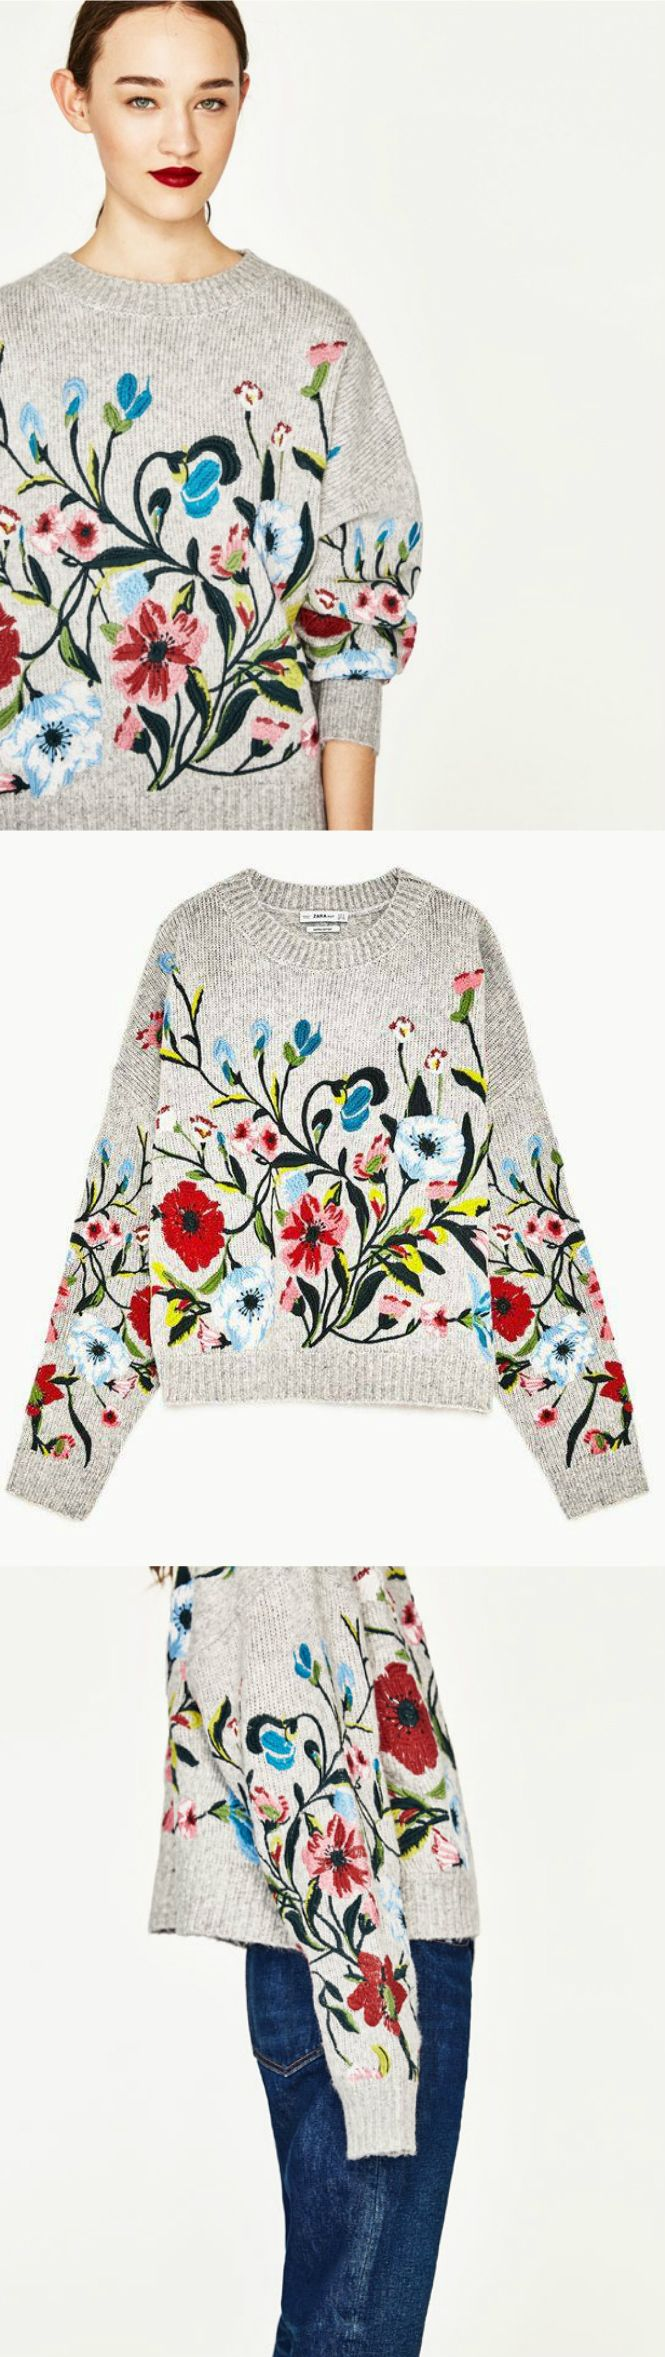 ❤️ Sweet Floral Fashion Trend Editors Pick : An Embroidery Sweater as featured on Pasaboho. Now available at $68. *Available for wholesale :: bohemian clothes, cute dresses and skirts. Fashion trend and styles from hippie chic, modern vintage, gypsy style, boho chic, hmong ethnic, street style, geometric and floral outfits.